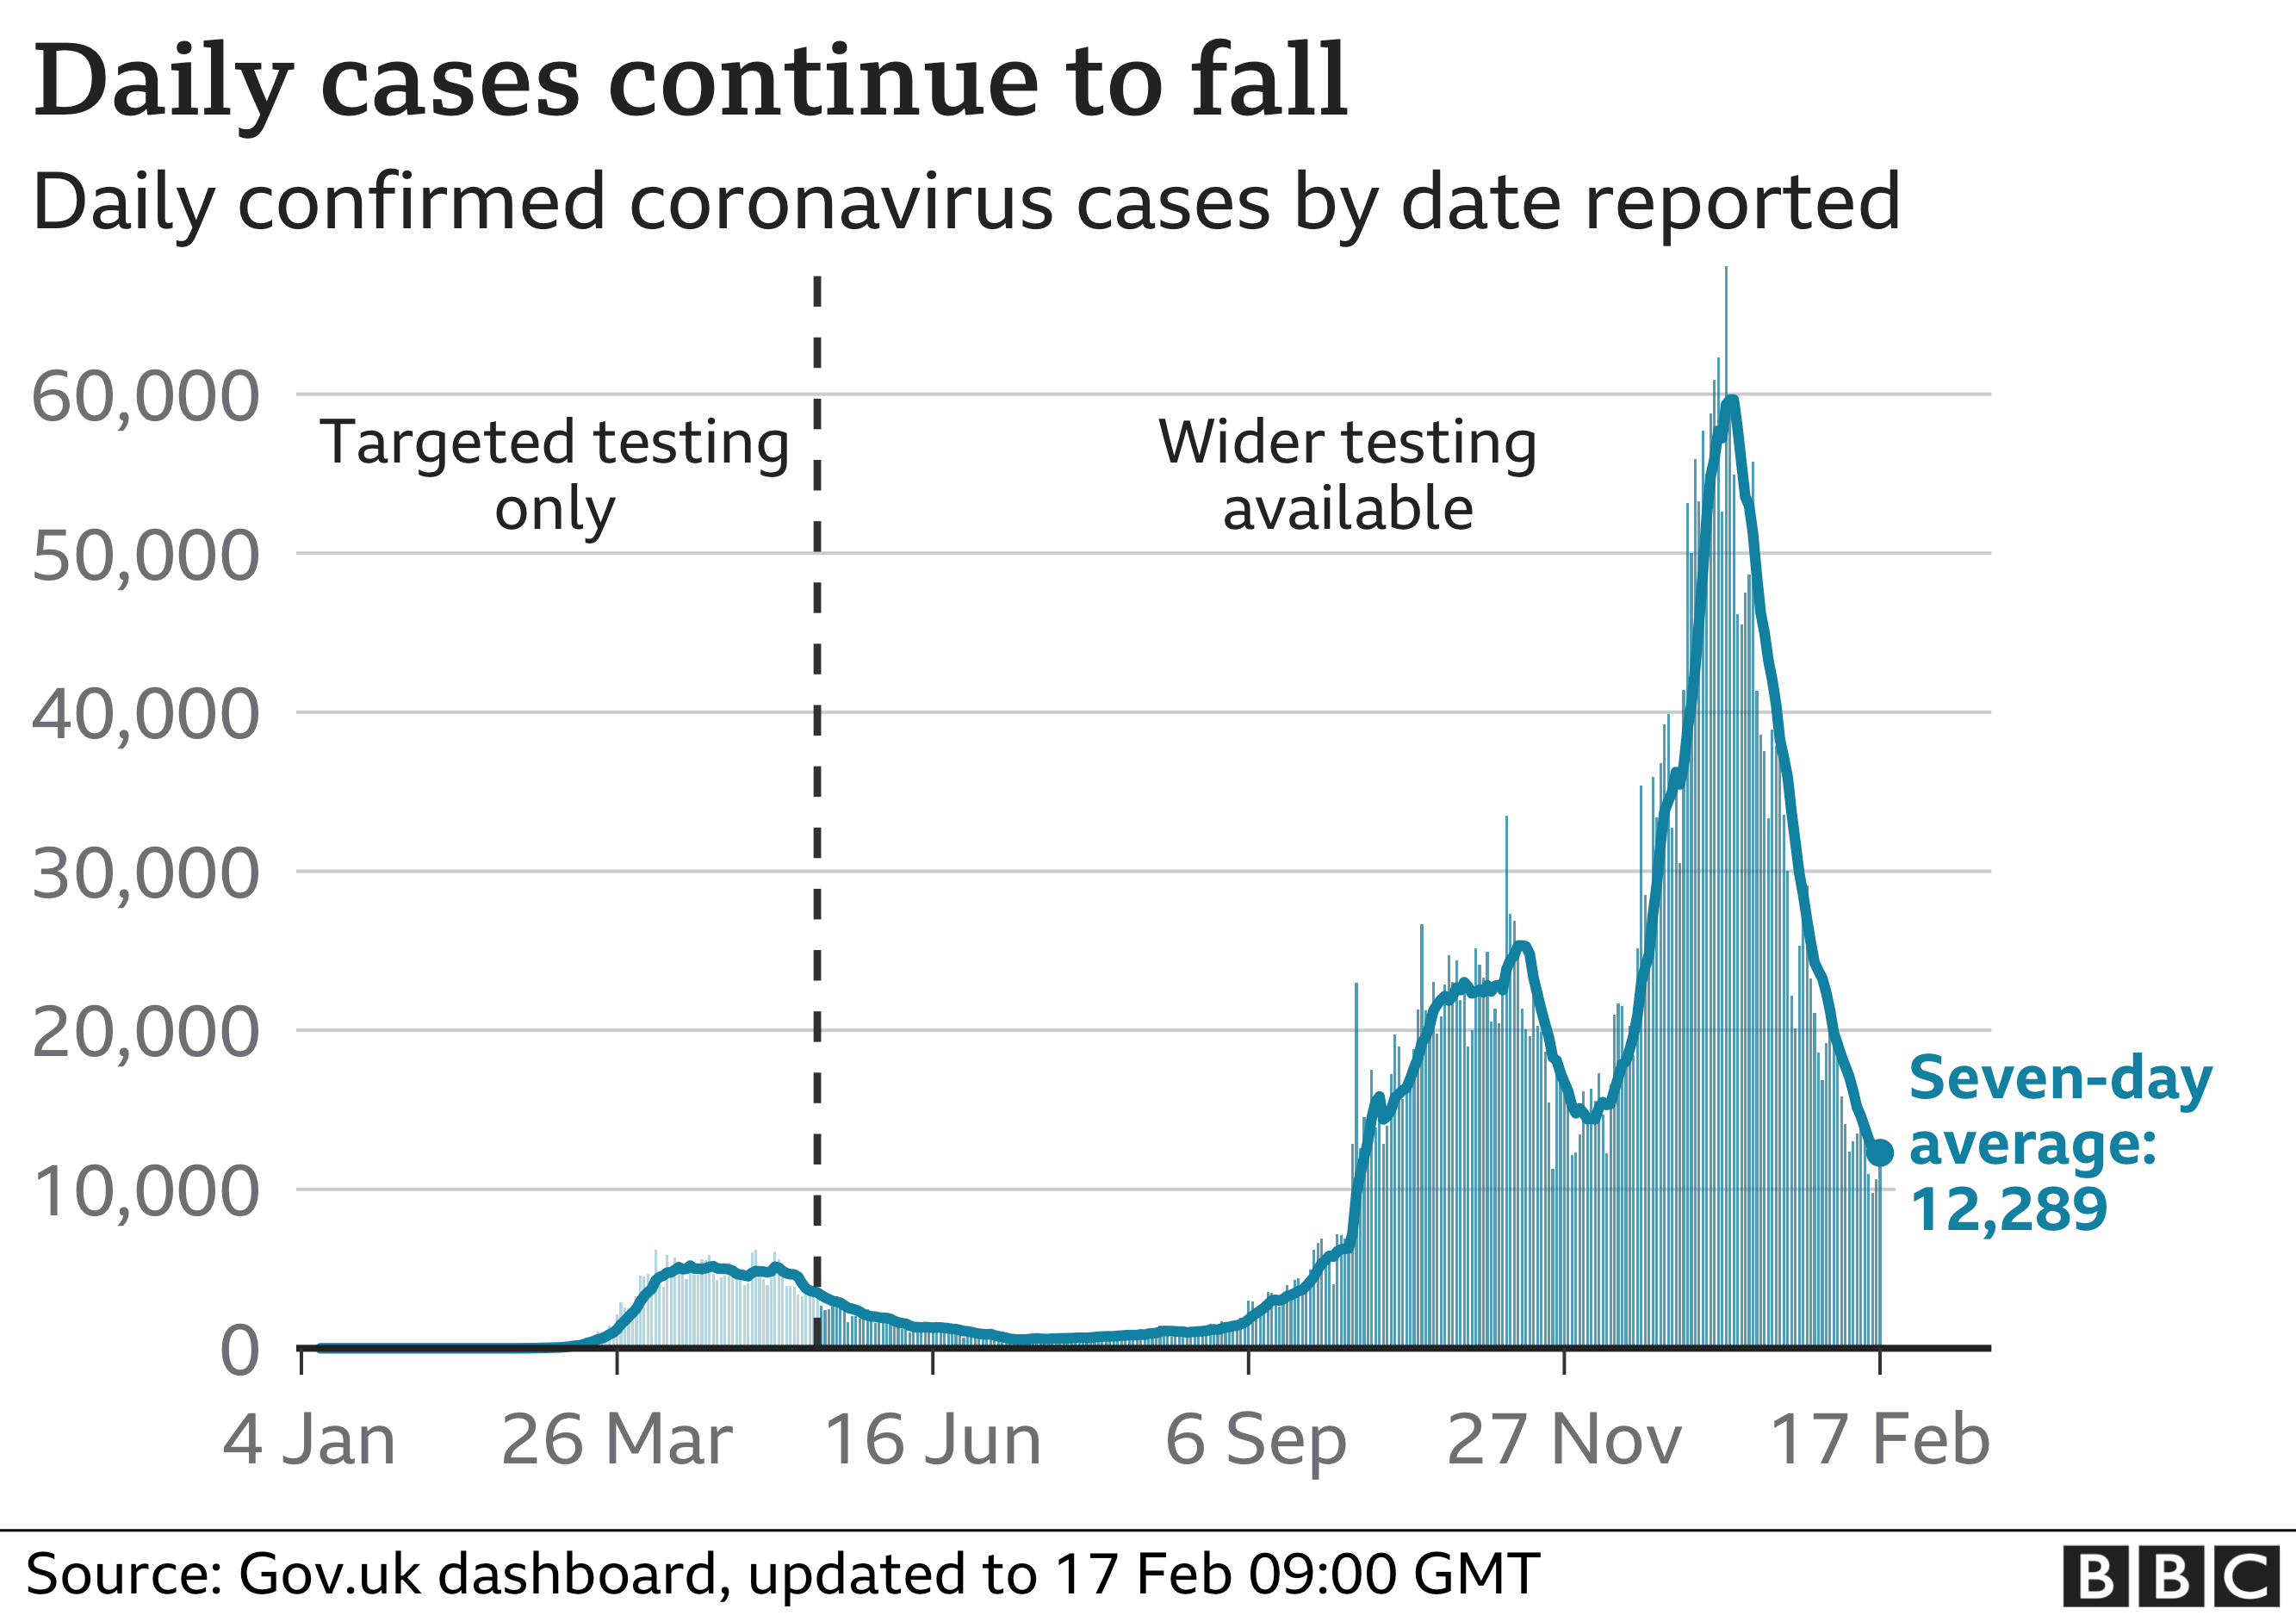 Chart shows cases continuing to fall